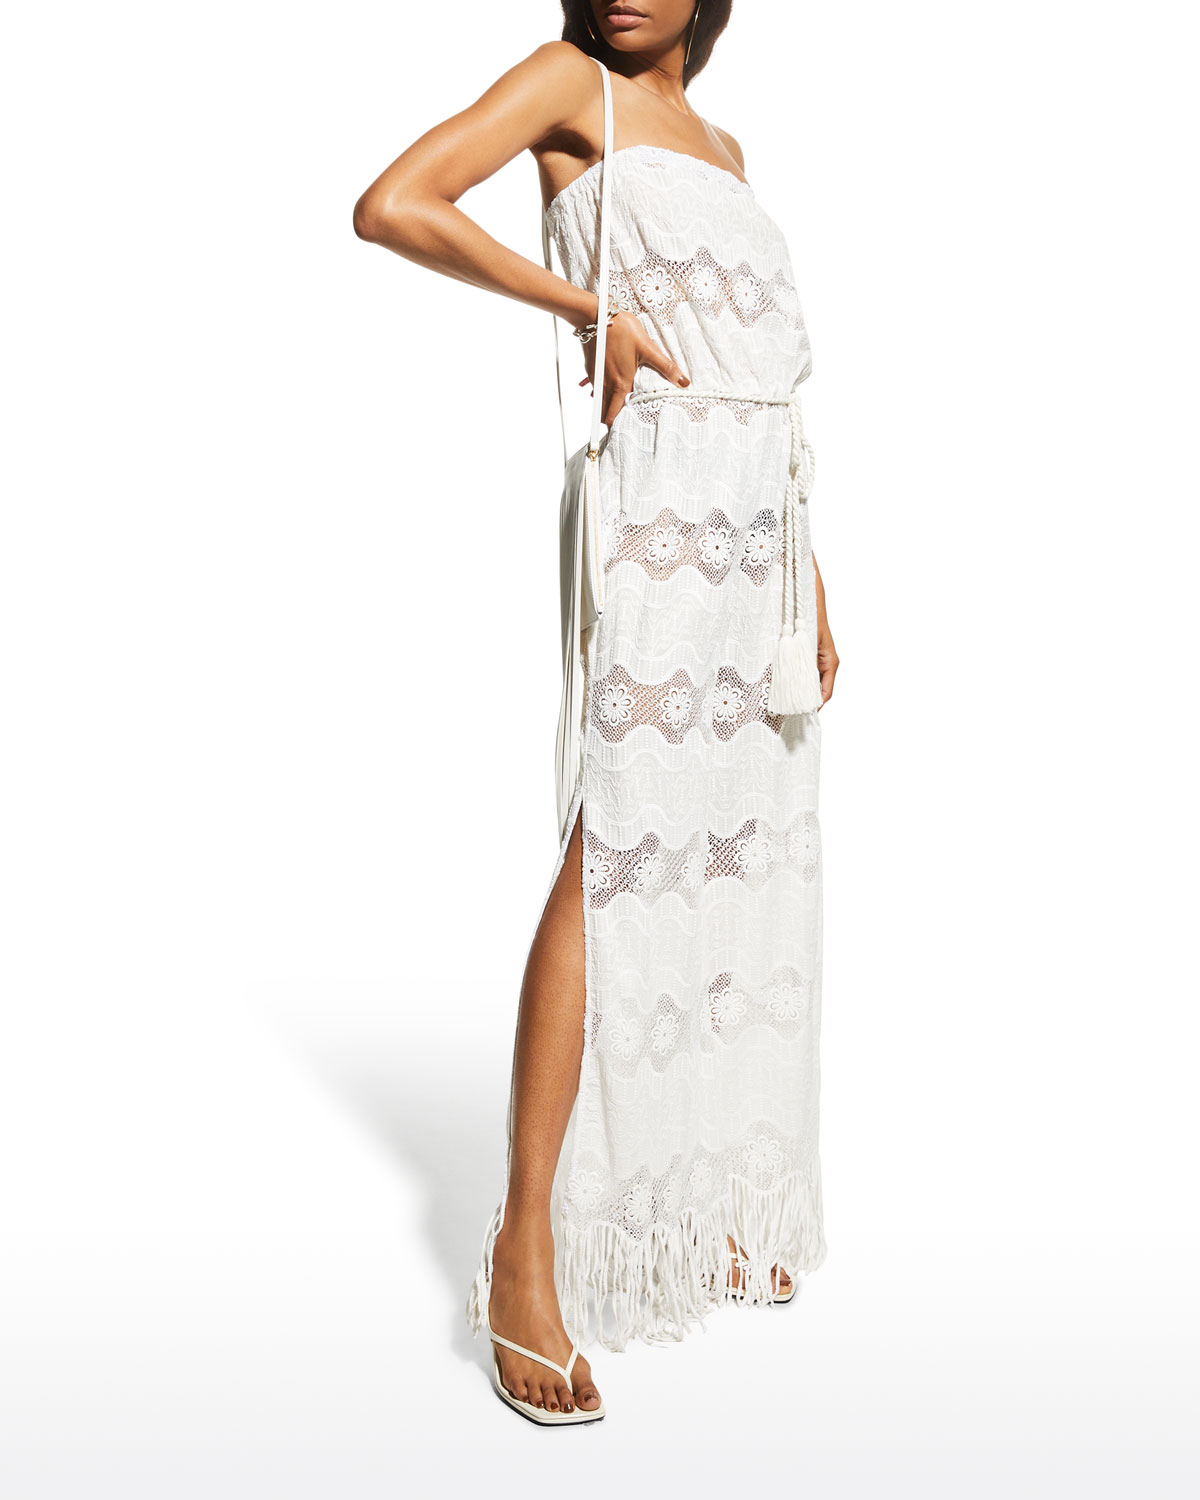 Naima Lace Belted Strapless Jumpsuit